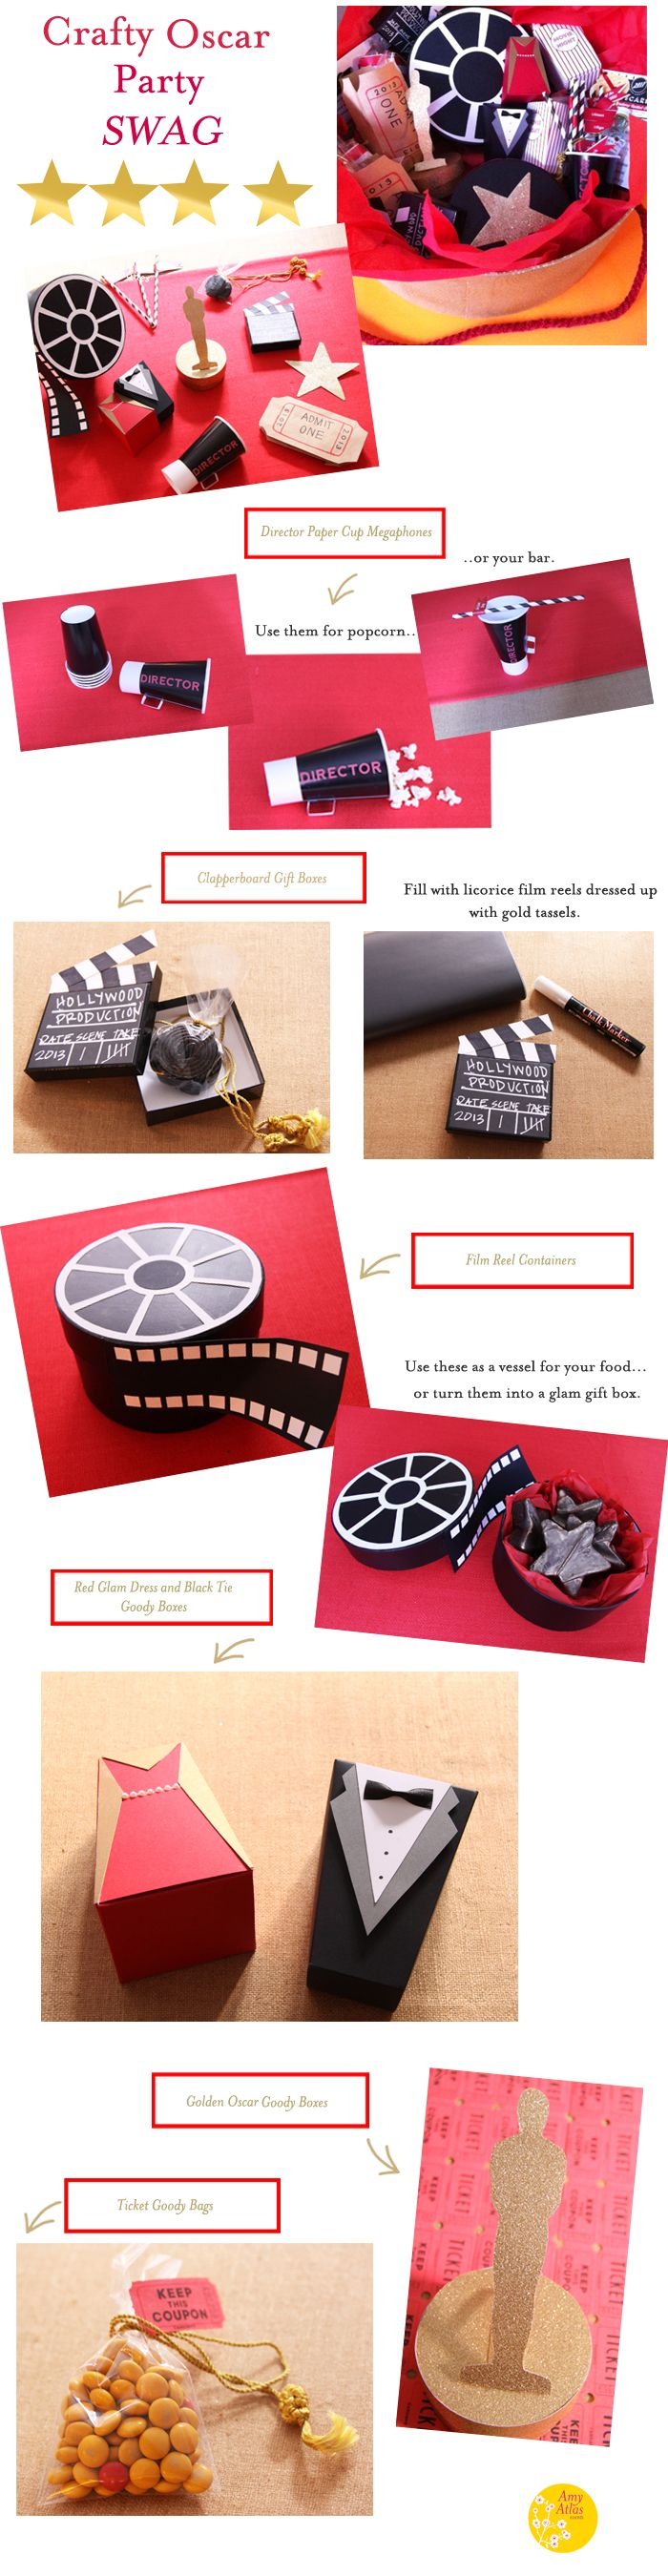 Easy oscar party crafty gift bag ideas using construction paper